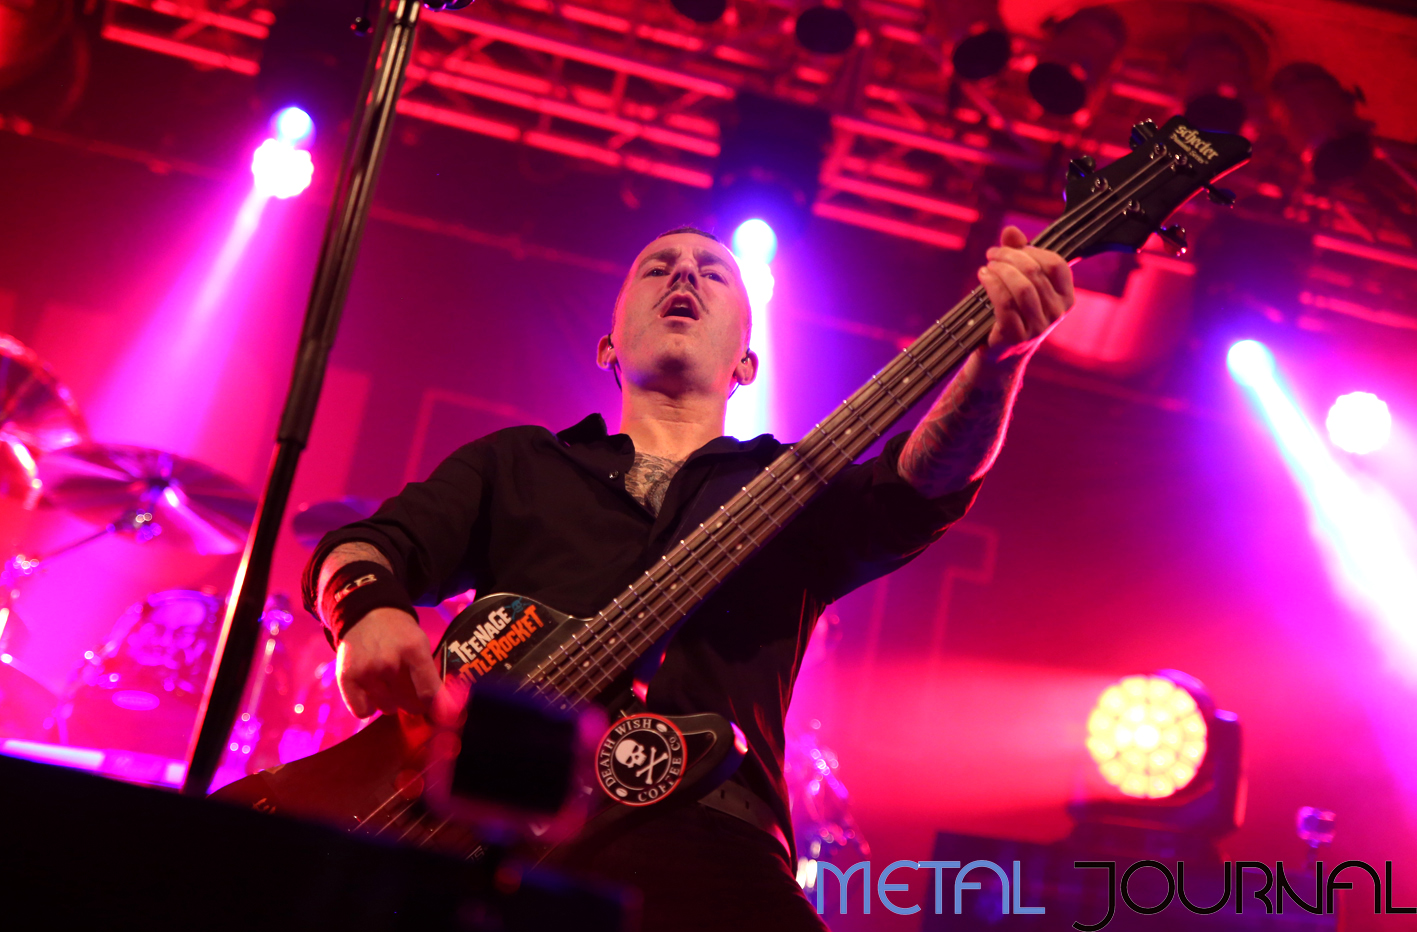 volbeat - metal journal pic 8